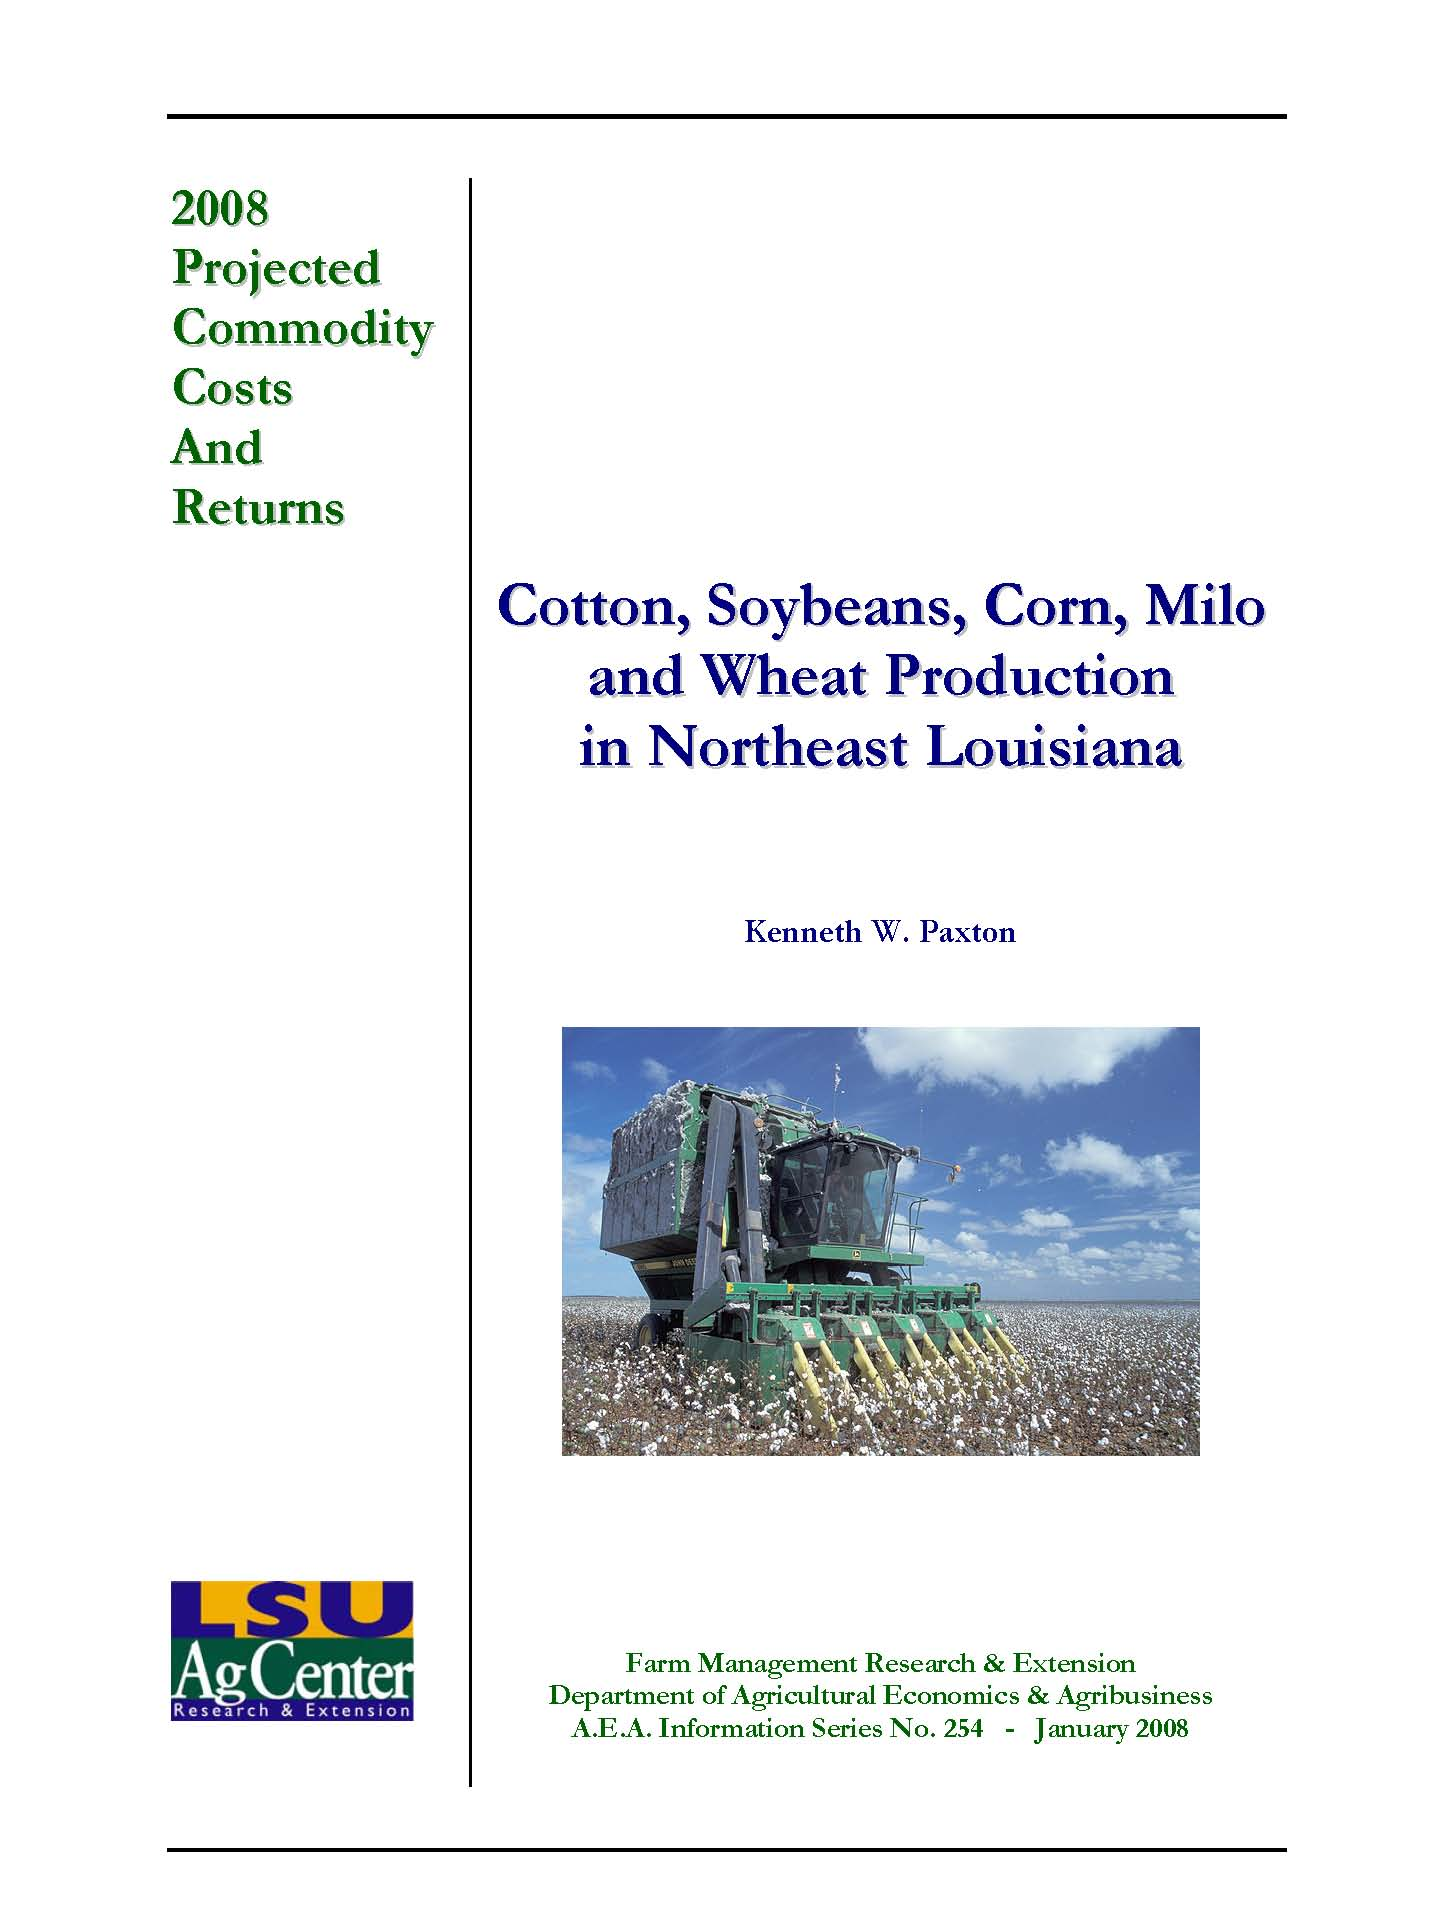 2008 Projected Northeast Louisiana  Cotton Soybeans Corn Milo and Wheat Production Costs